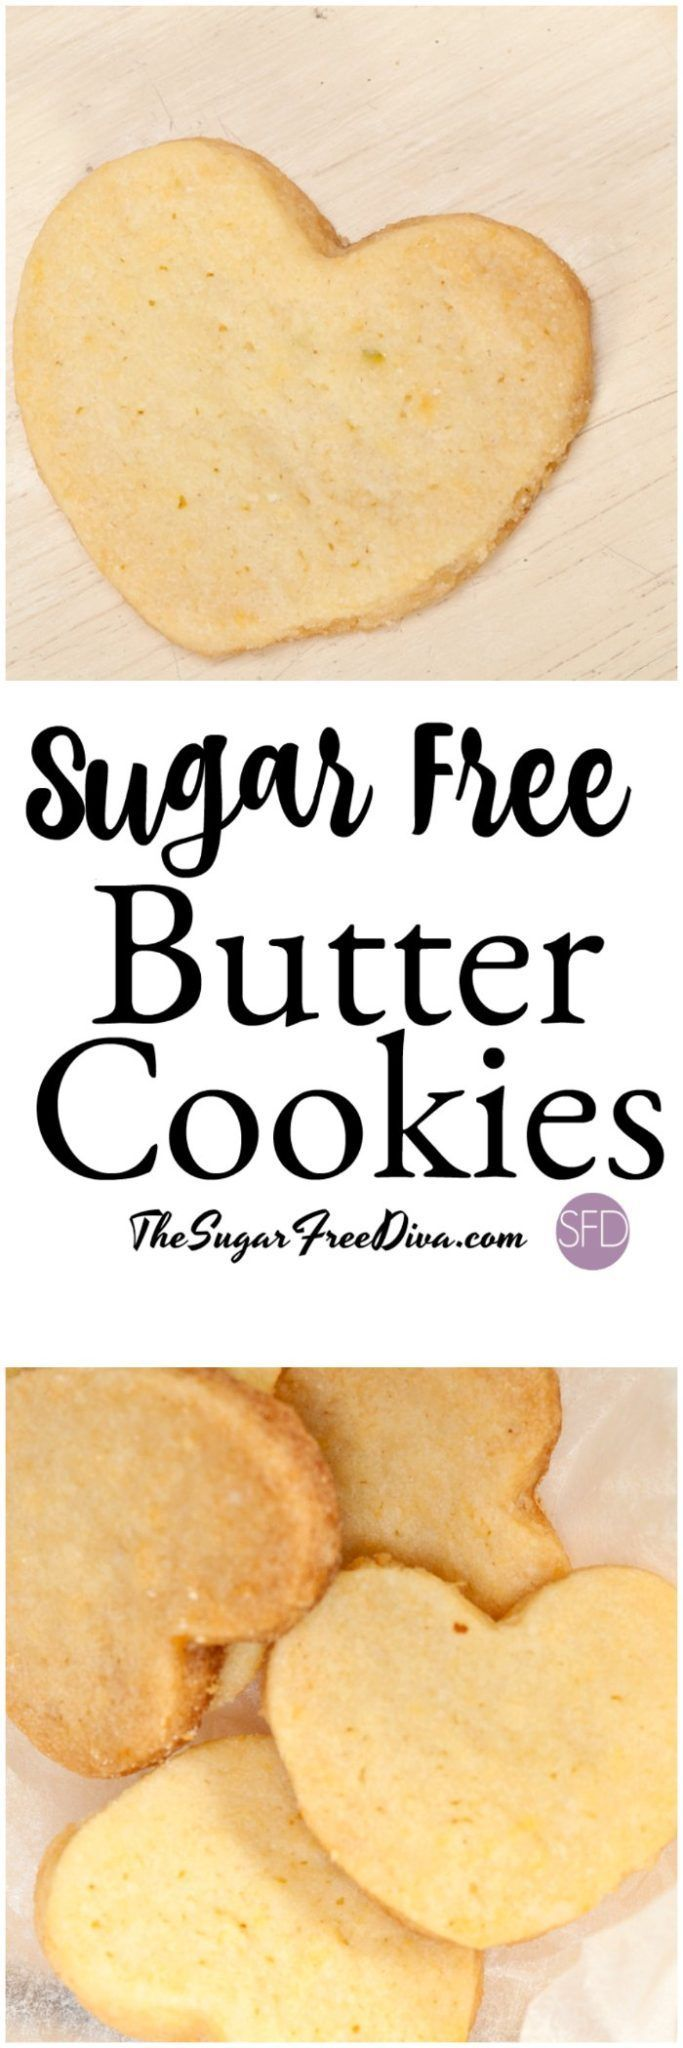 Sugar Free Butter Cookies #recipe #sugarfree #keto #baking #butter #easy #yummy